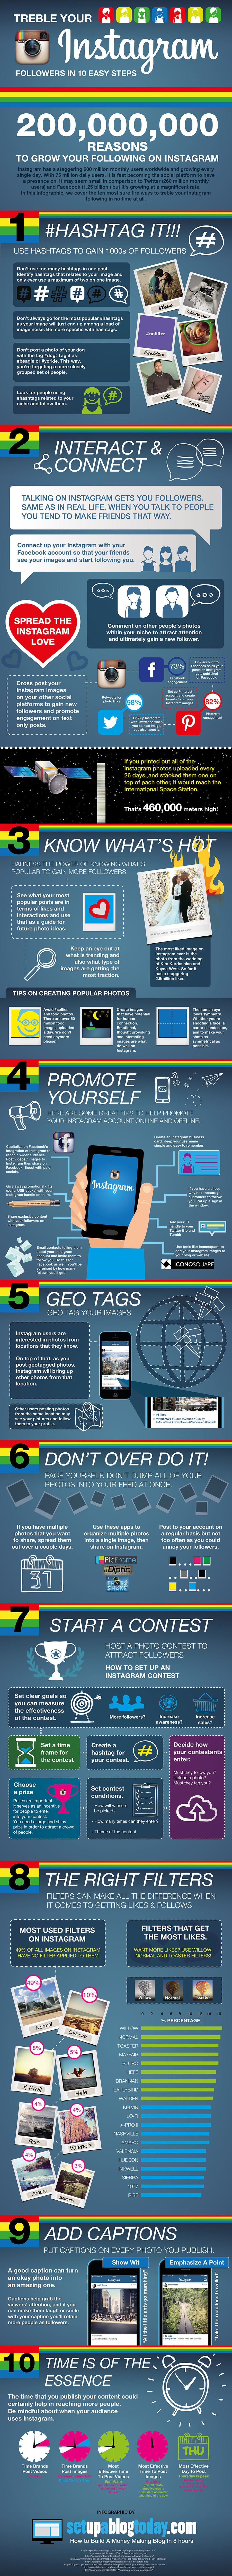 Infographic: How to Treble Your Instagram Following